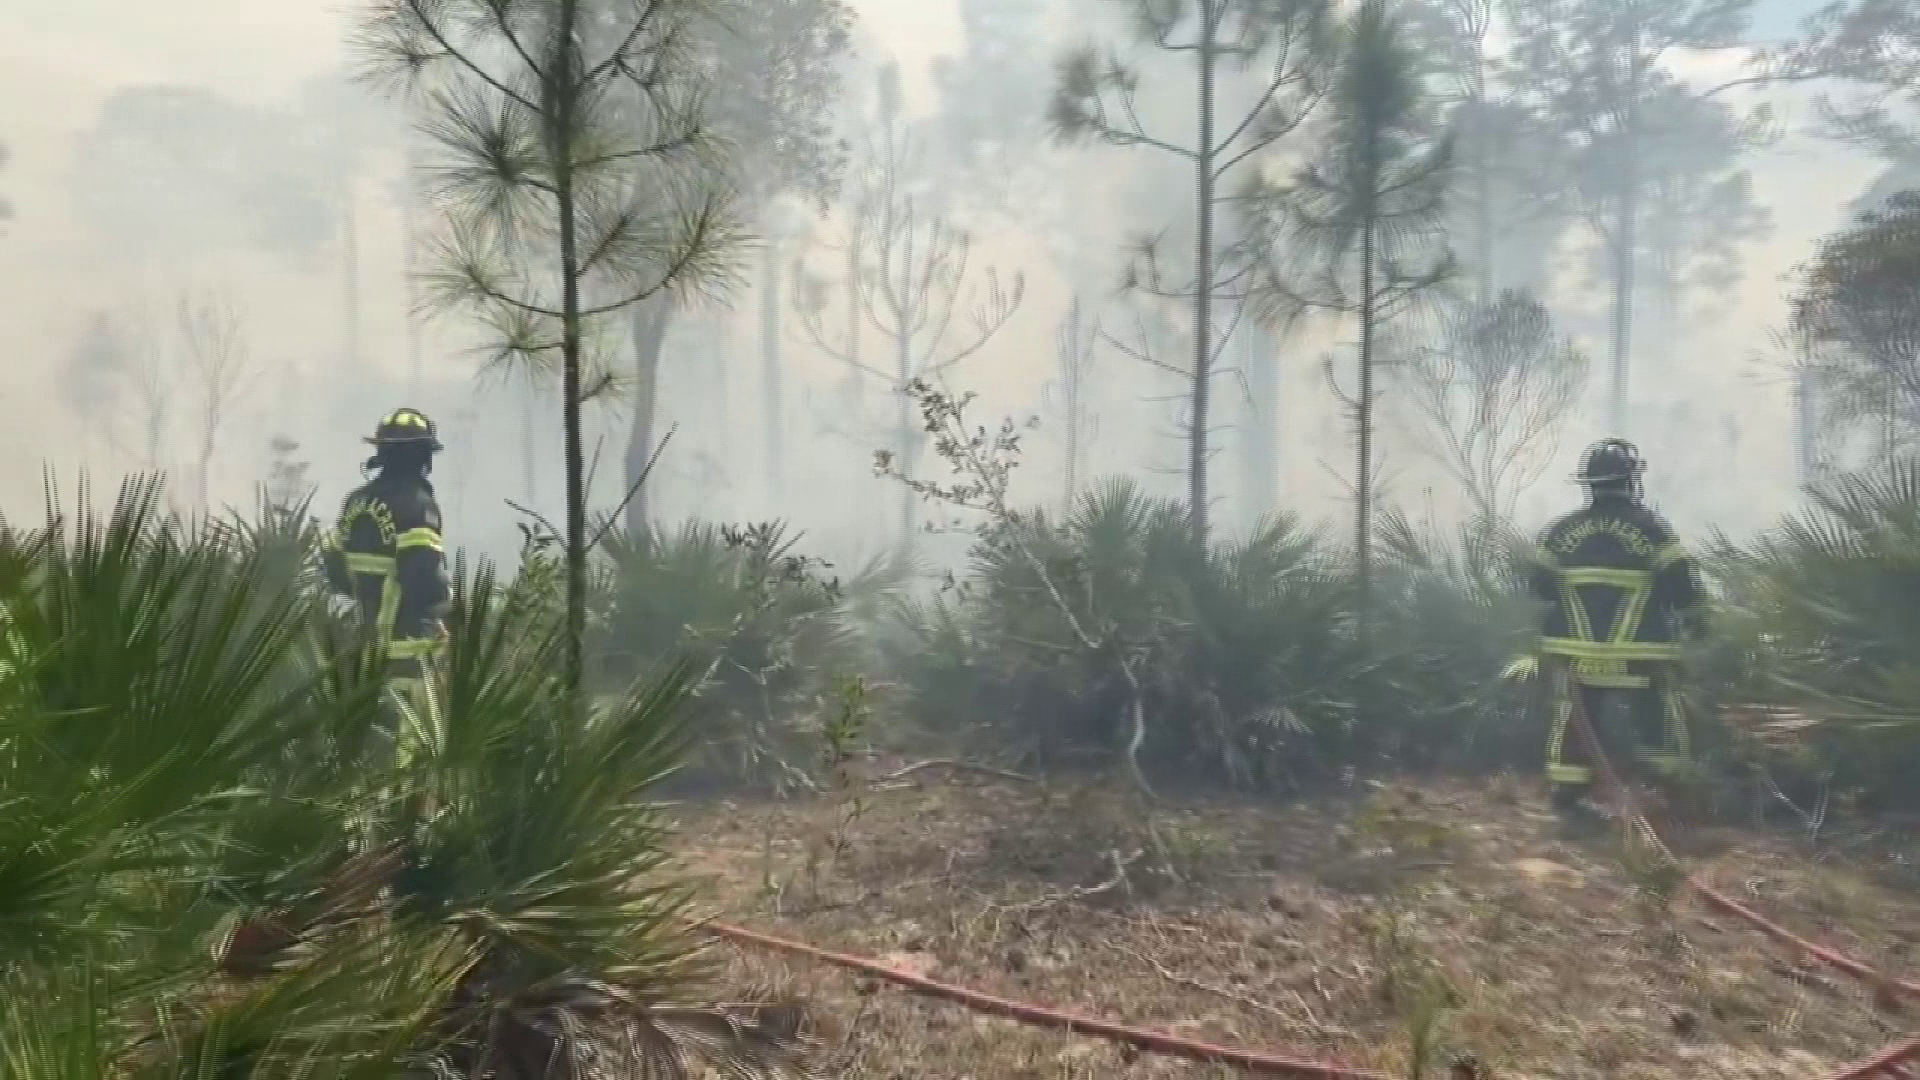 Lehigh Acres Fire Rescue prepares for the worst during dry season